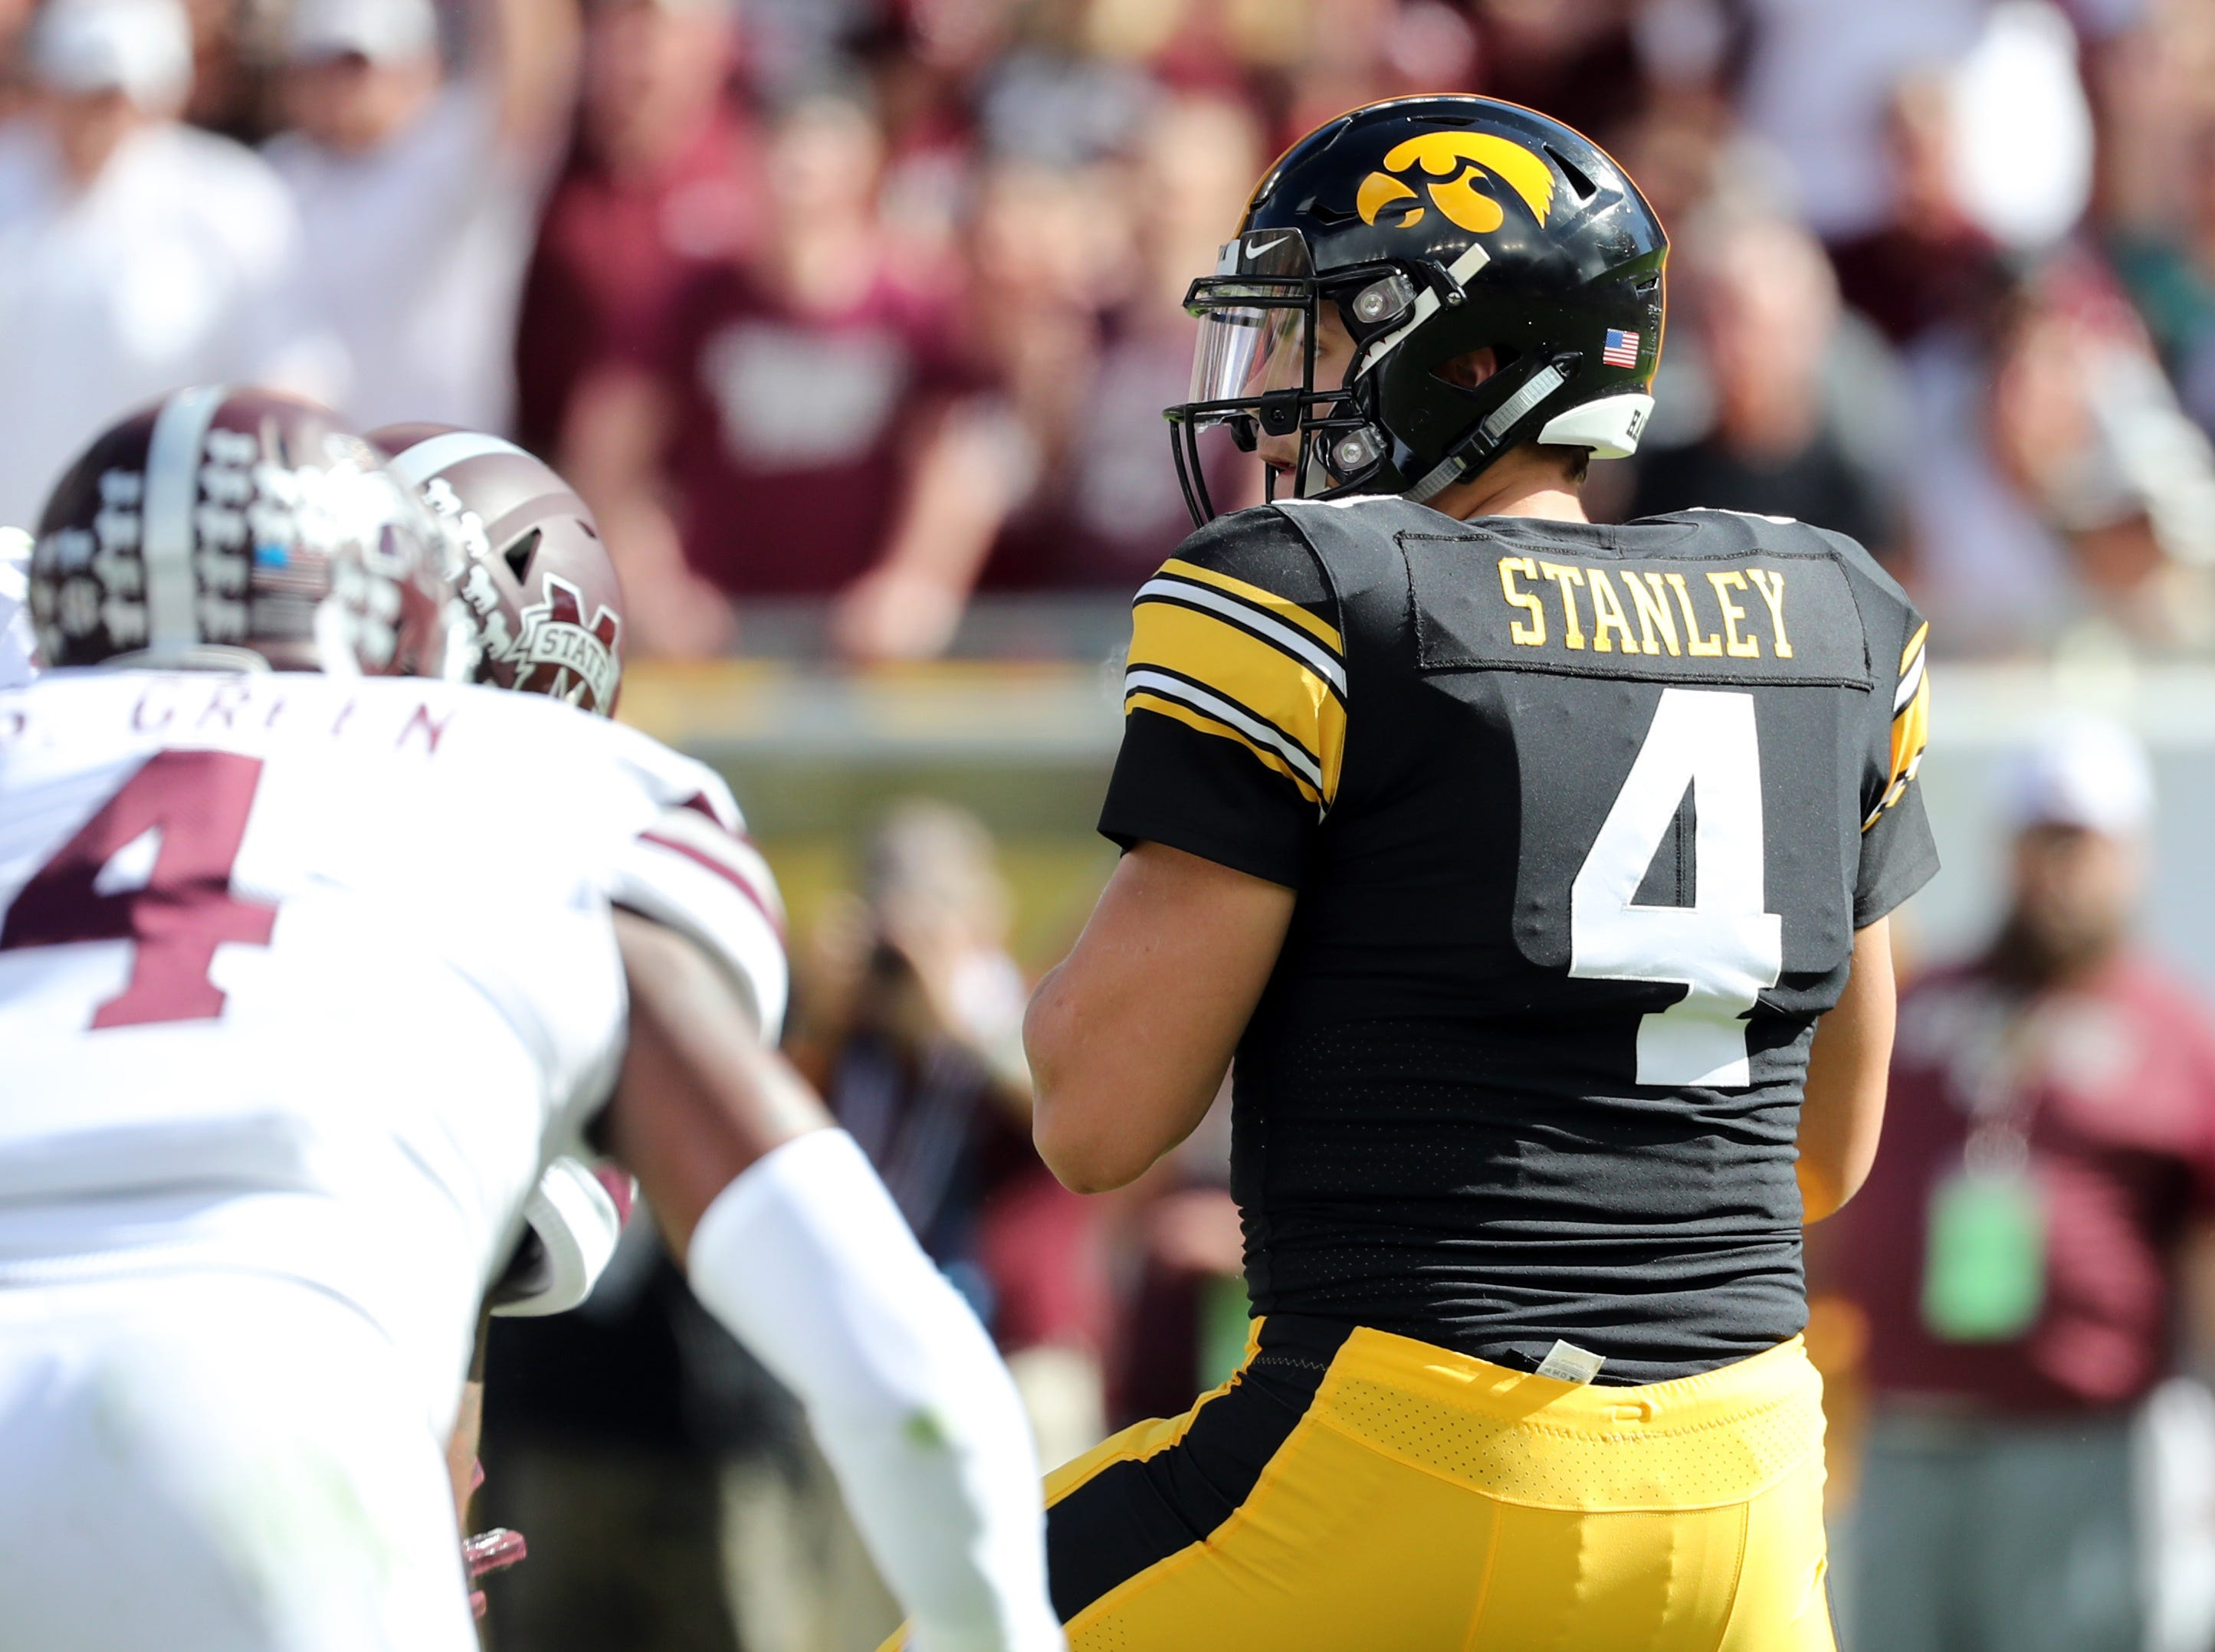 Jan 1, 2019; Tampa, FL, USA; Iowa Hawkeyes quarterback Nate Stanley (4) throws the ball against the Mississippi State Bulldogs during the first quarter in the 2019 Outback Bowl at Raymond James Stadium. Mandatory Credit: Kim Klement-USA TODAY Sports